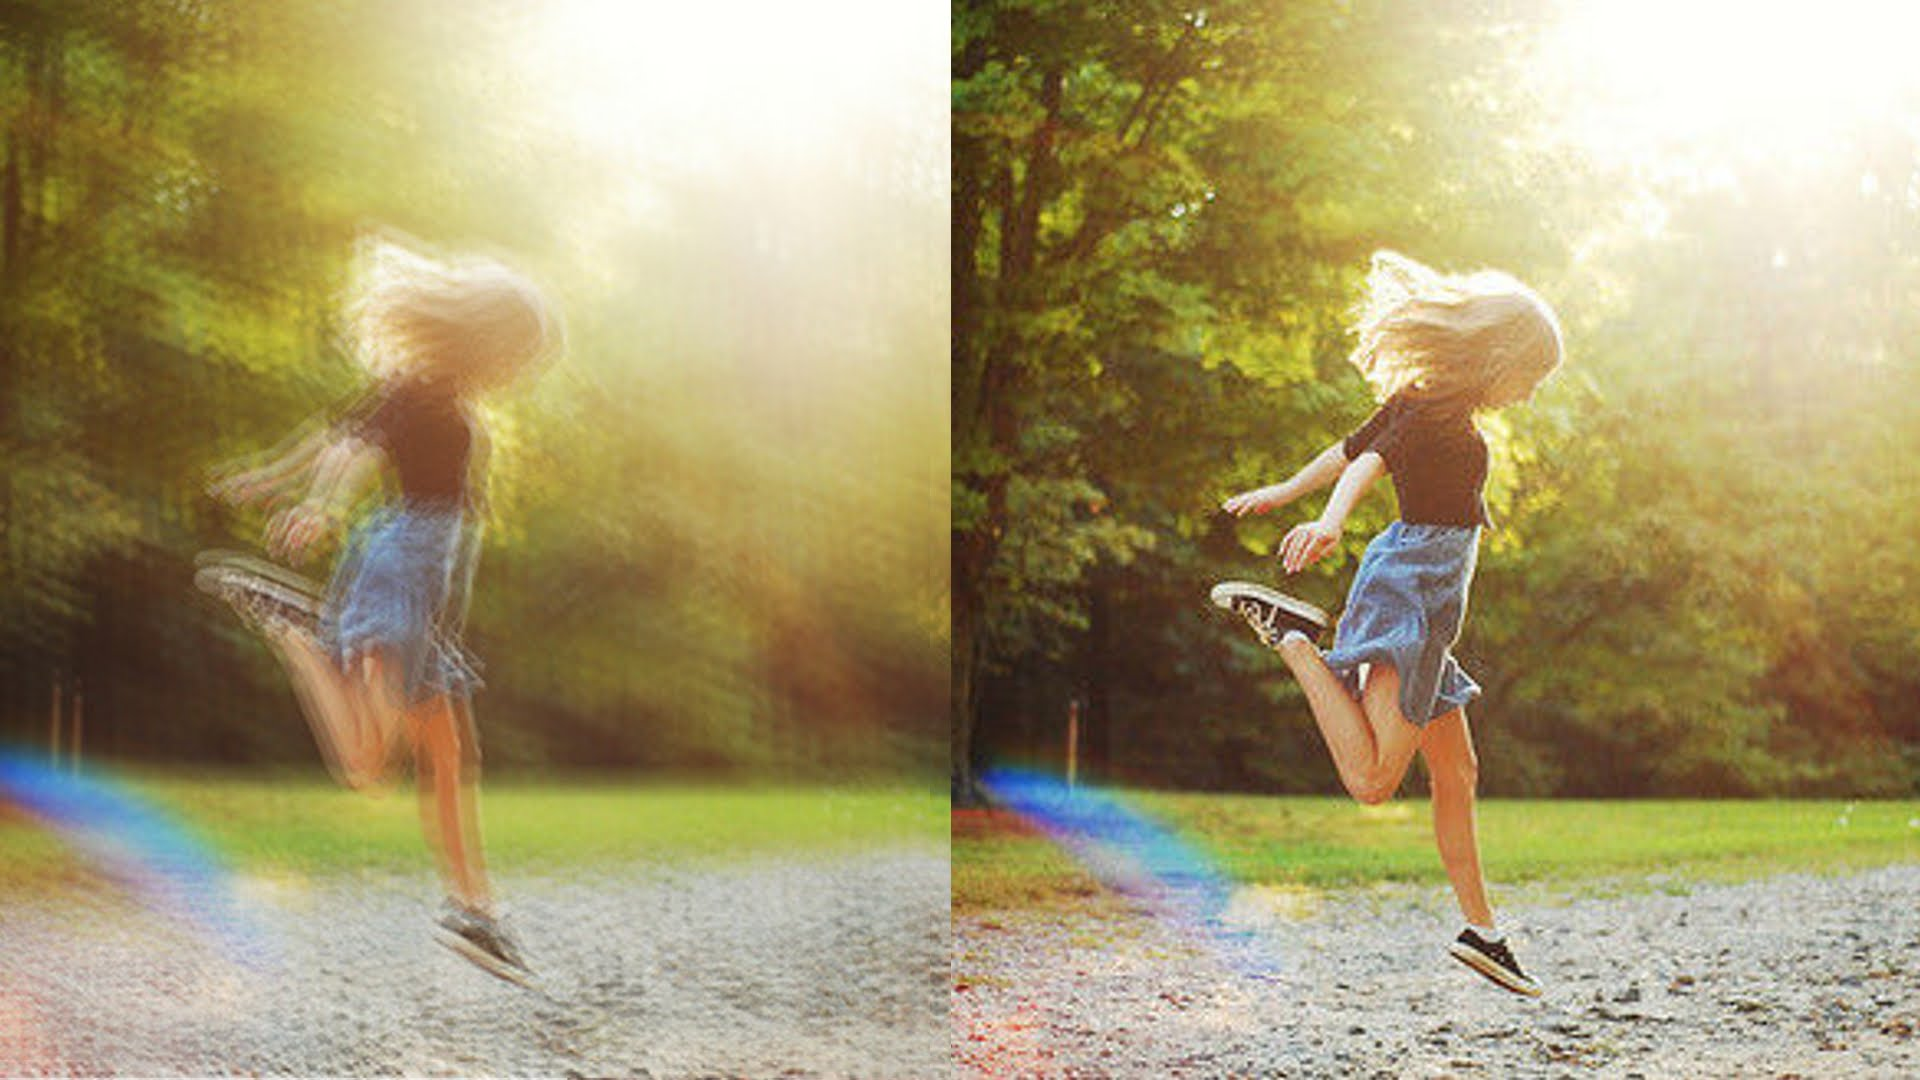 Two photo examples of girl skipping rope. One photo is blurry, the other is not.